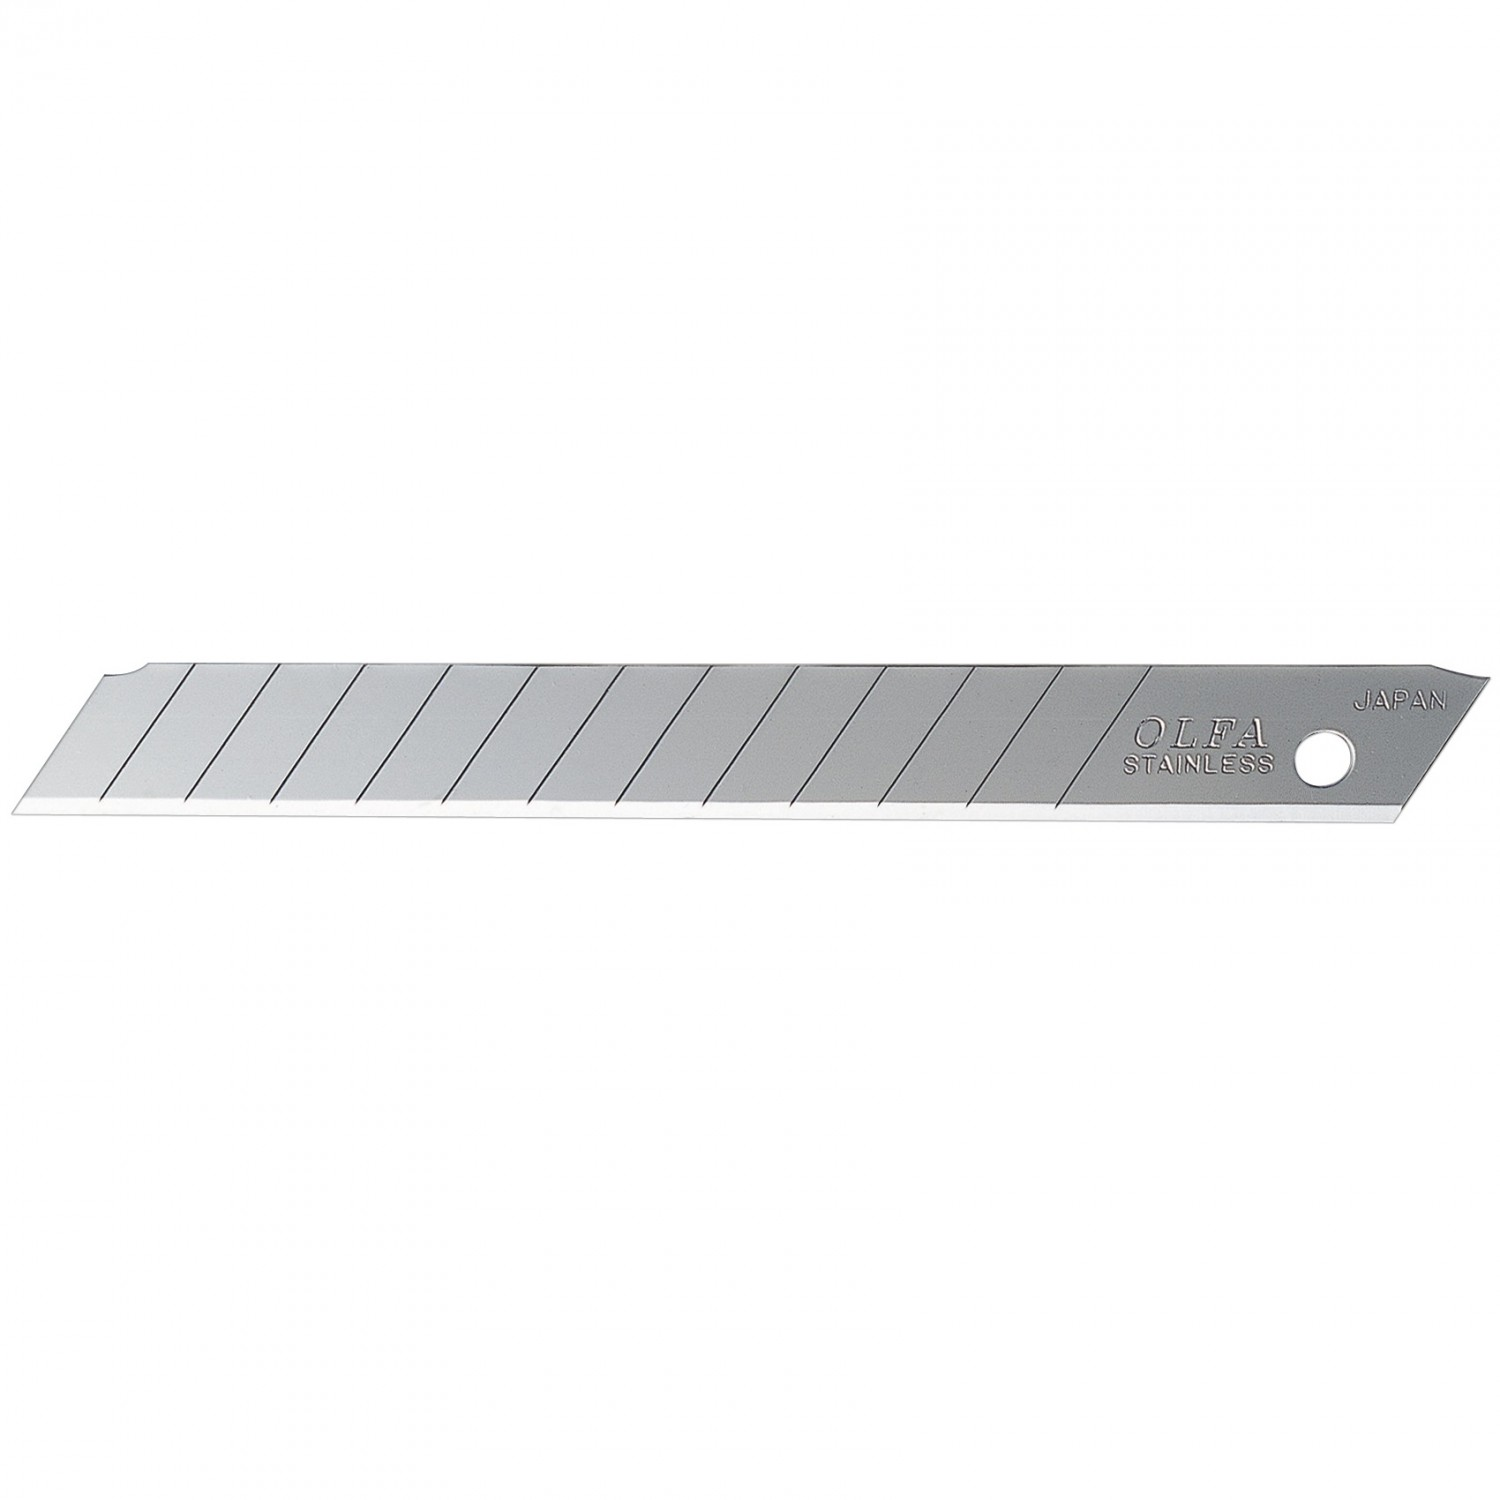 Olfa AB-50S Stainless Steel Blade